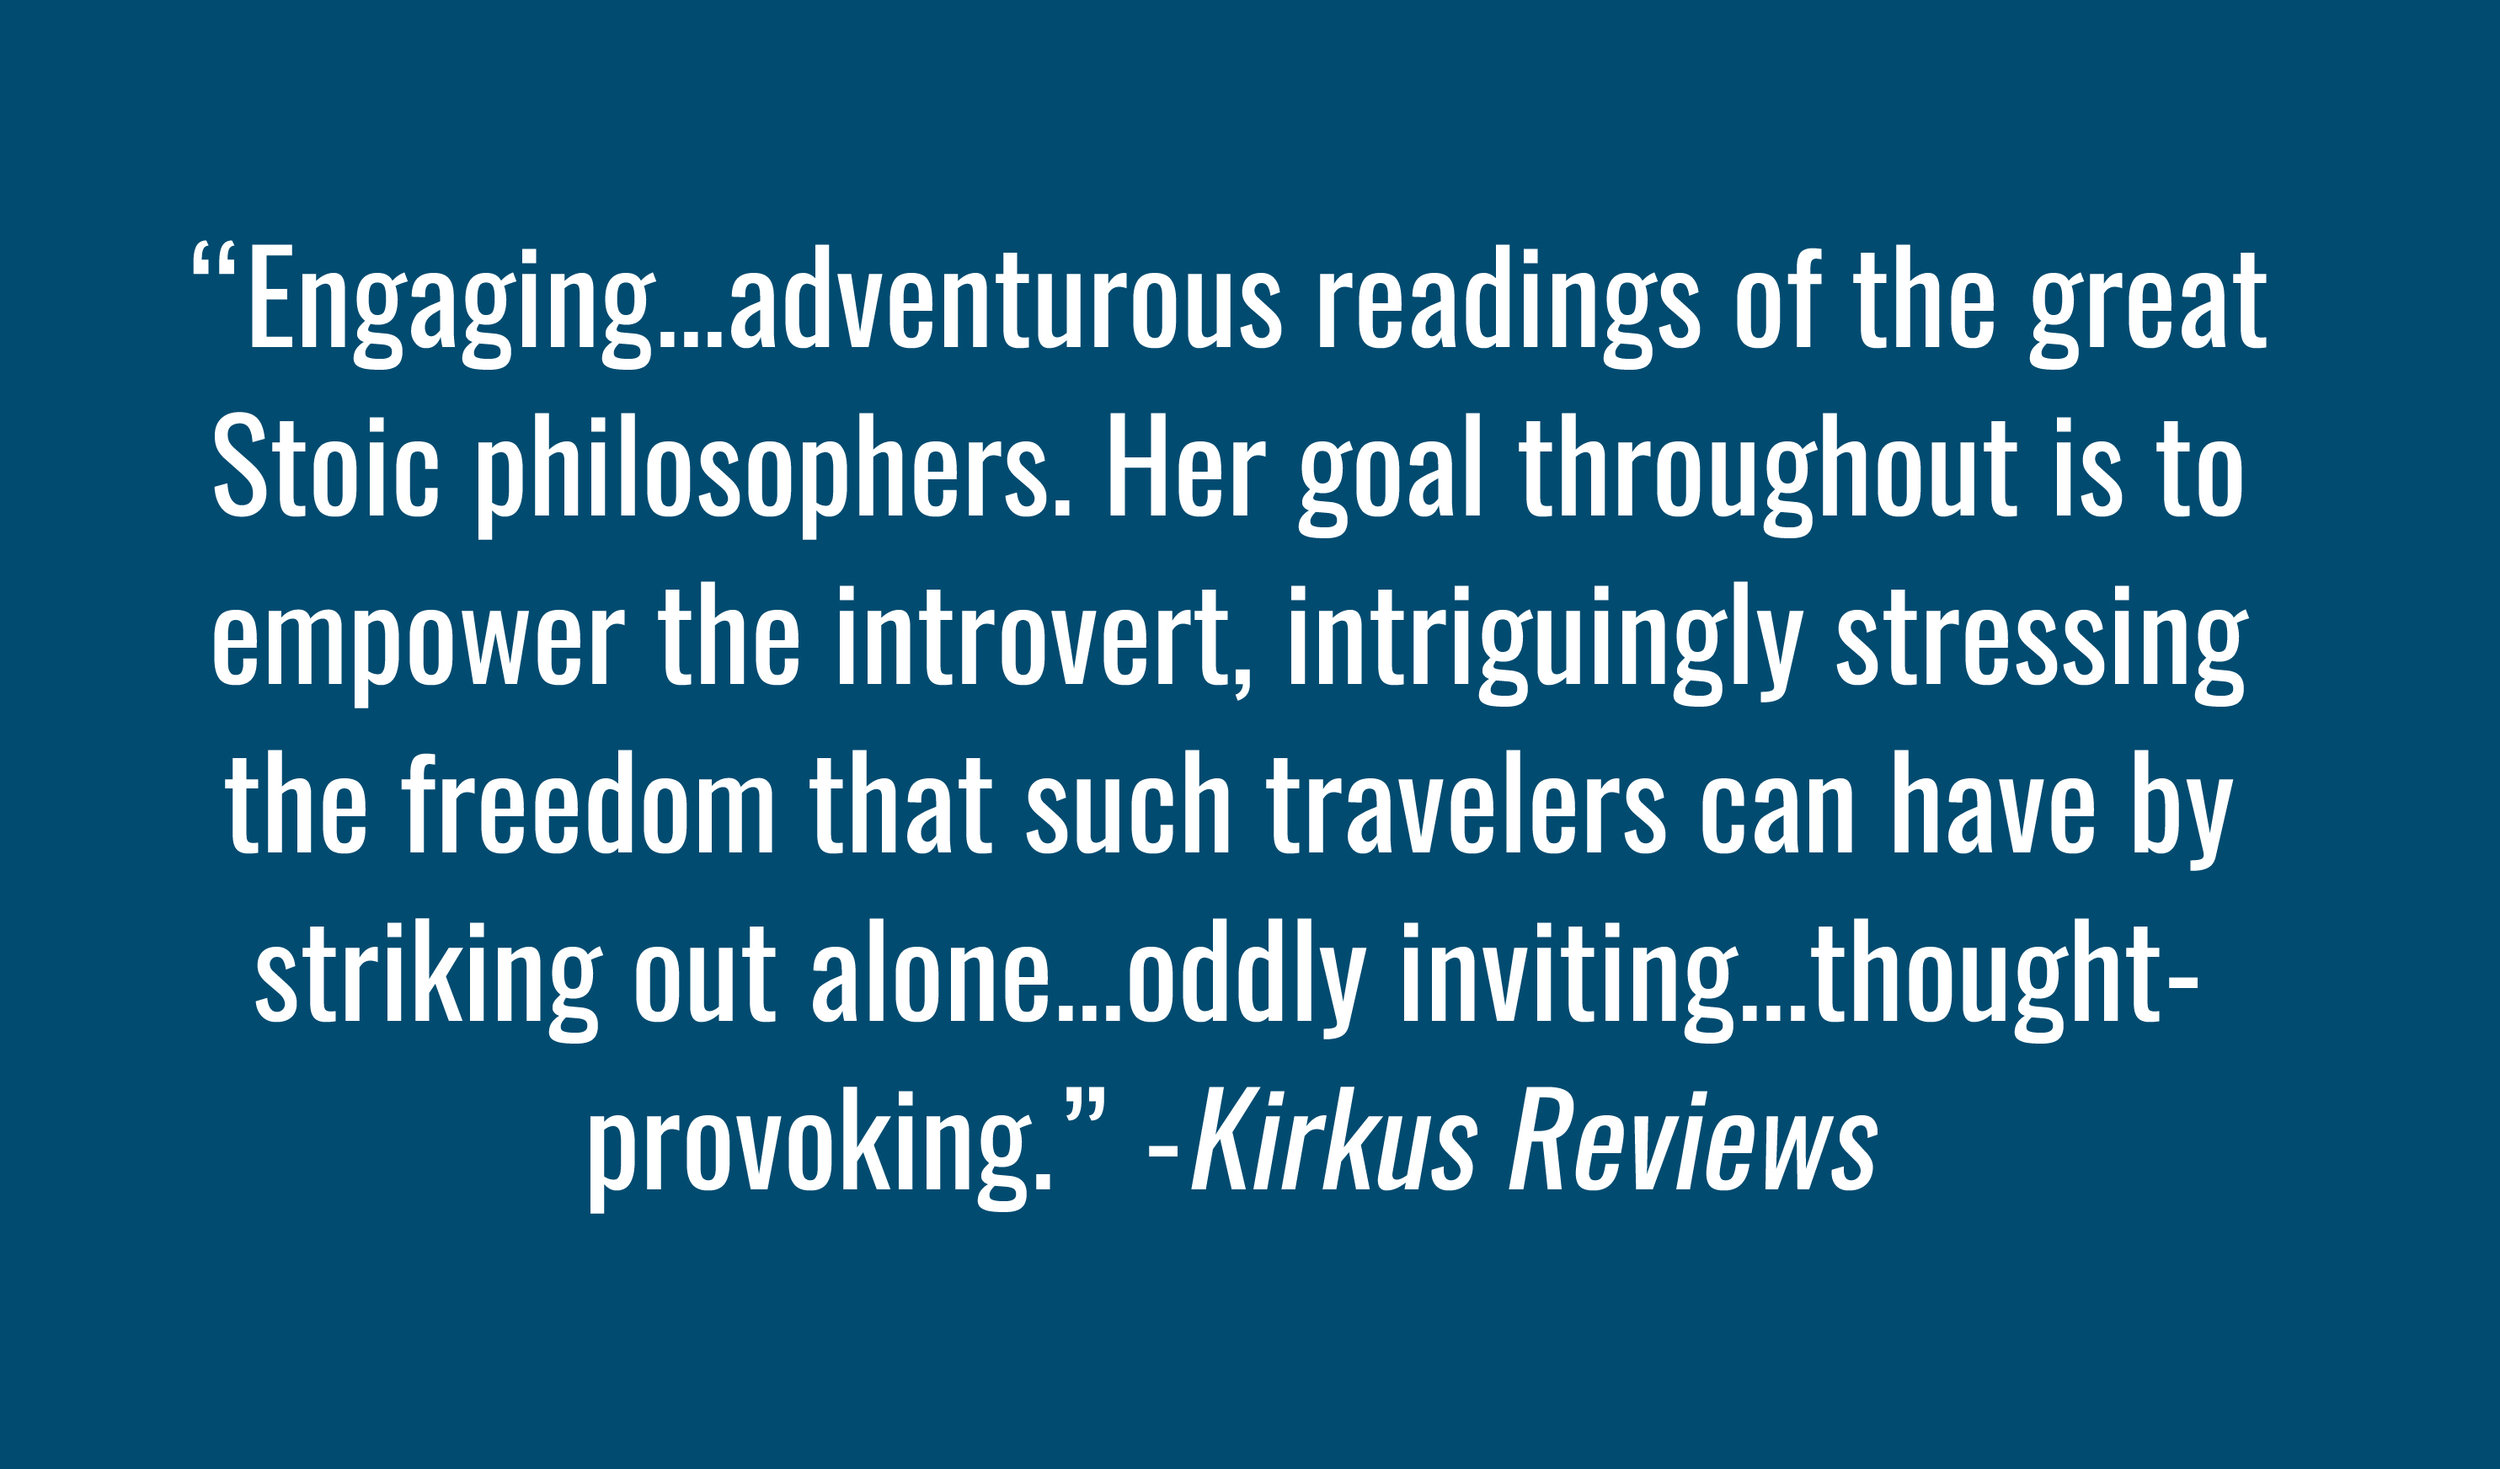 kirkus-quote-blue-centered-text.jpg